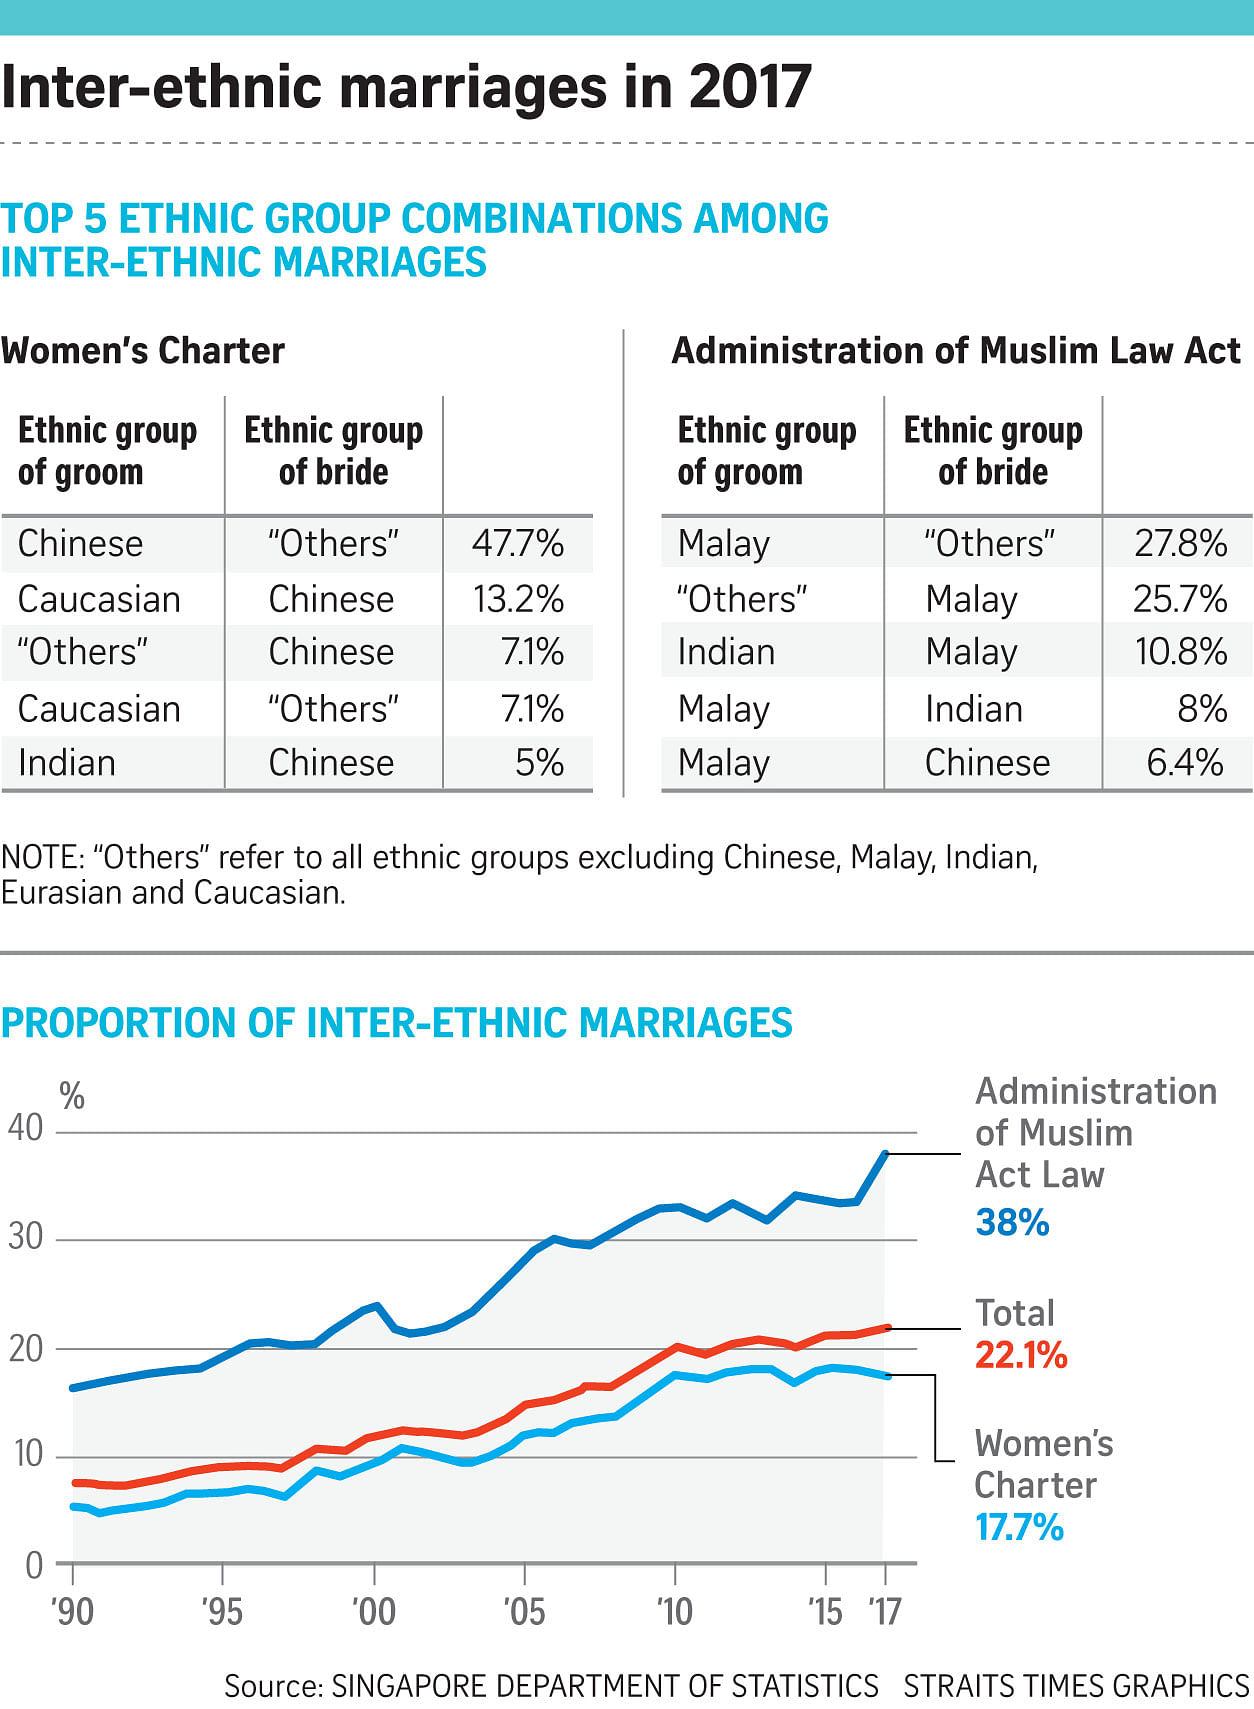 What excellent statisitcs on interracial marriage how